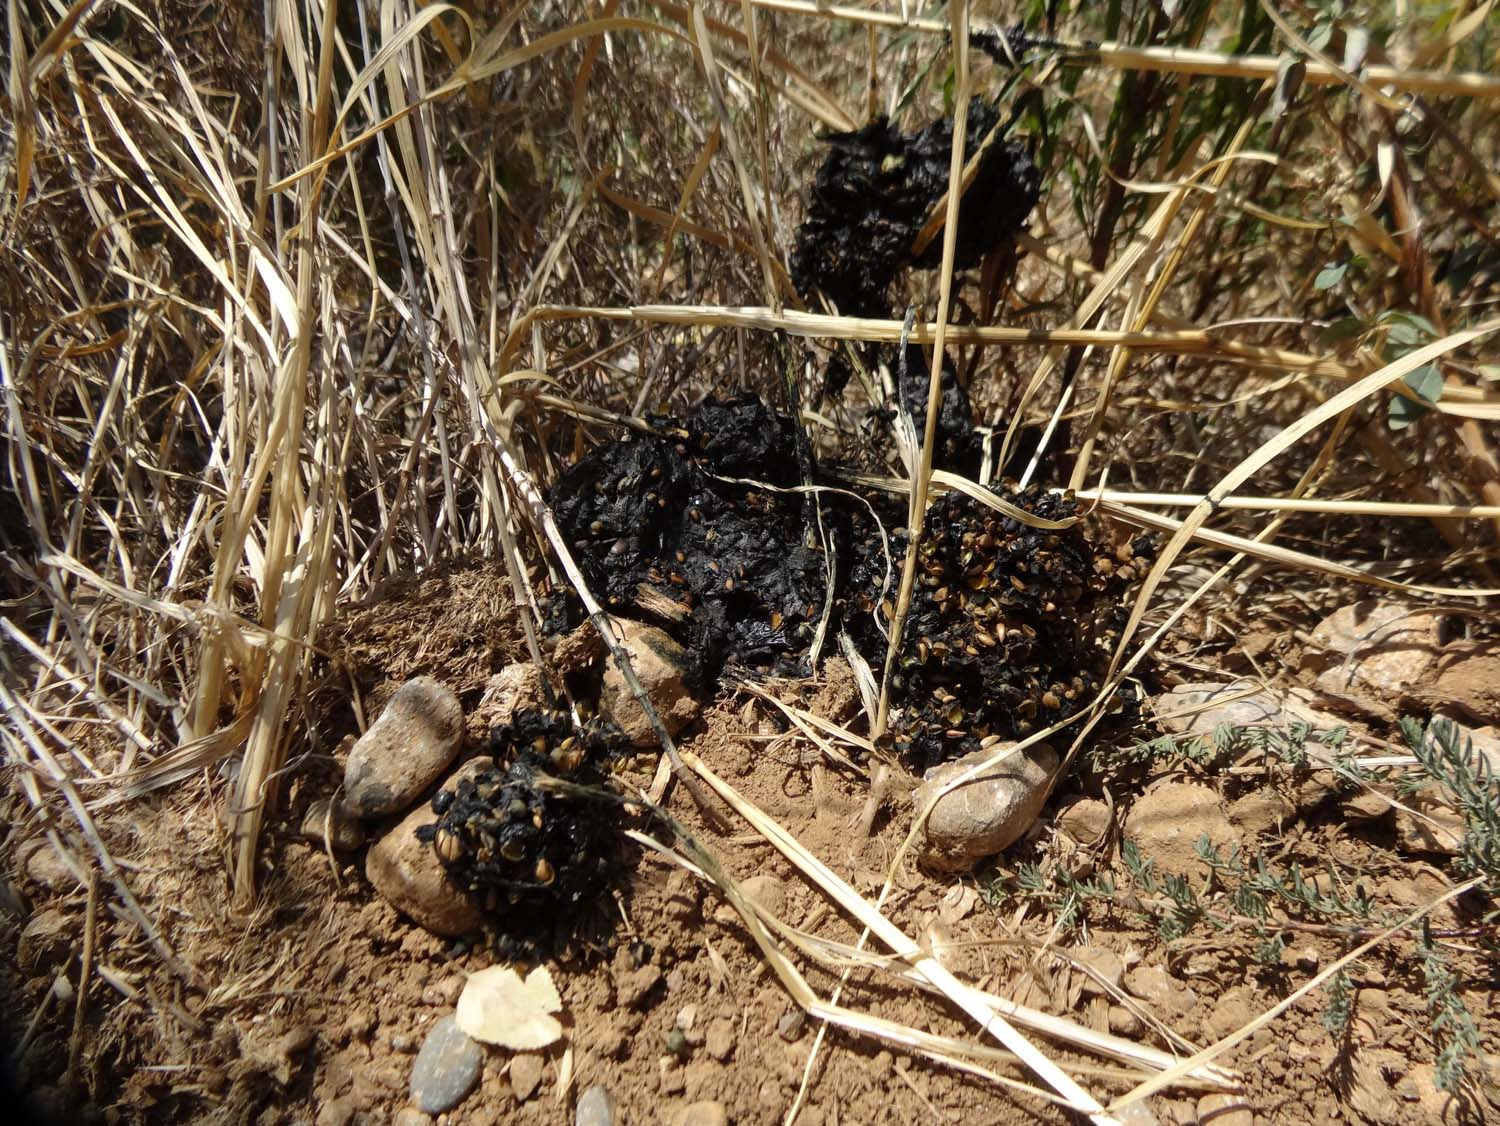 bear poo - unfortunately we never saw the one who dumped this poo